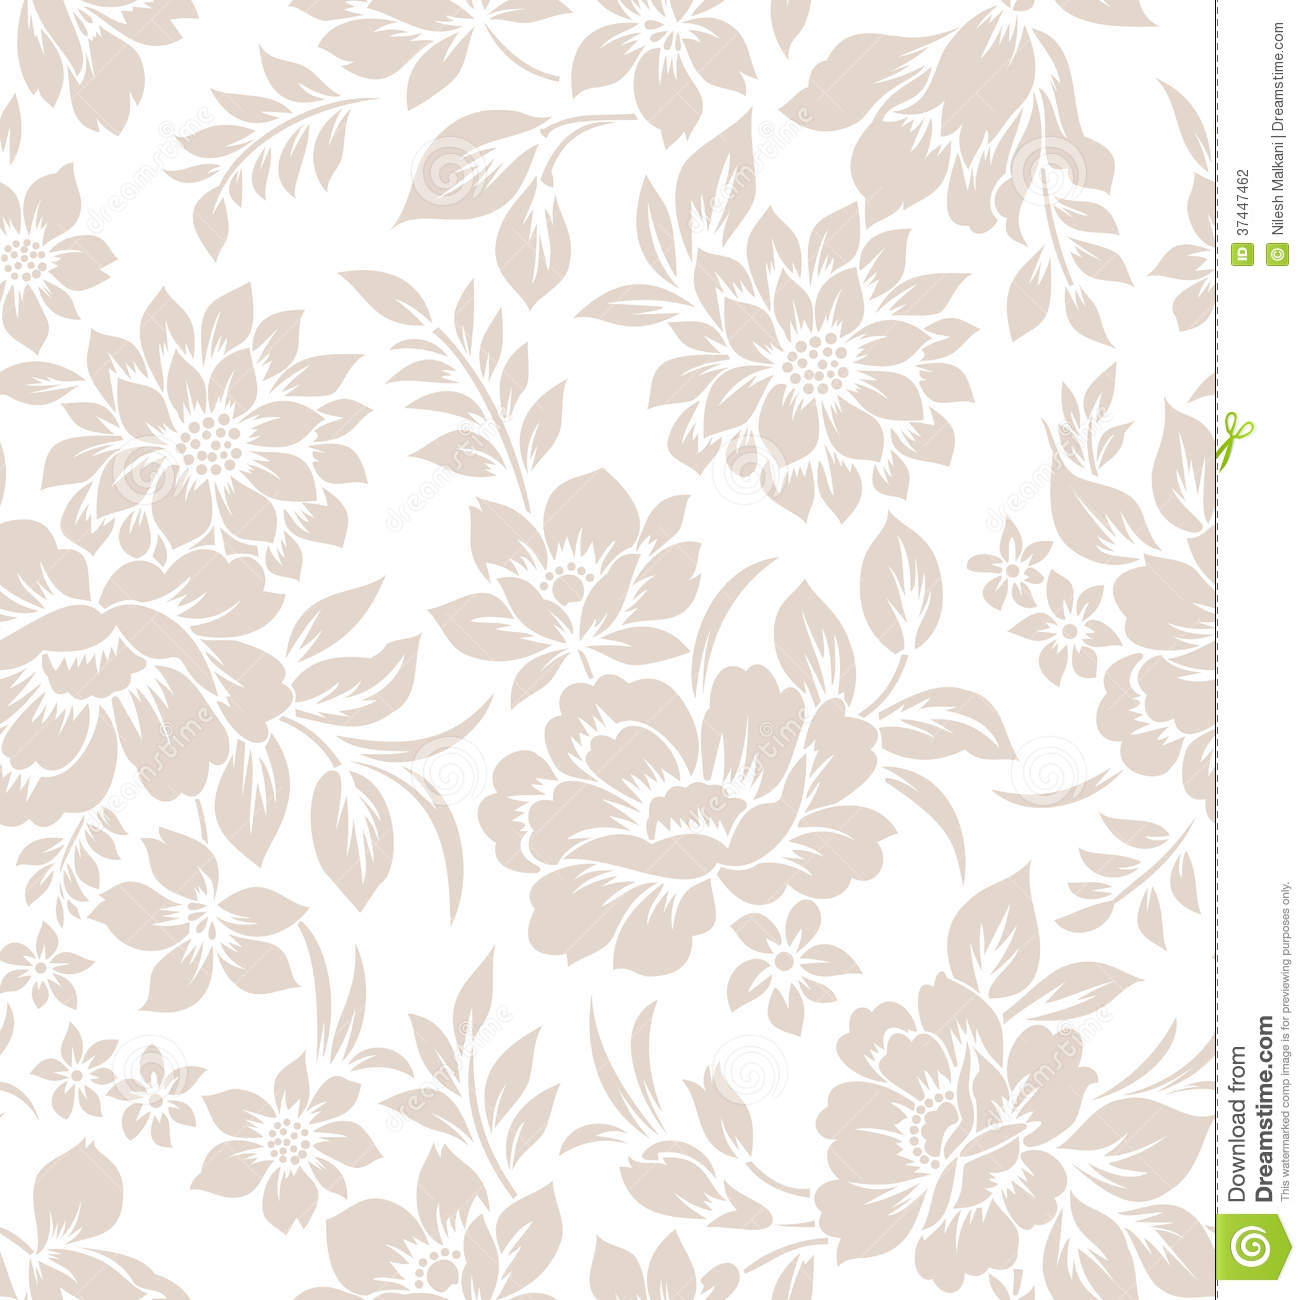 Curtain Texture Seamless seamless floral curtain design stock photography - image: 37447462